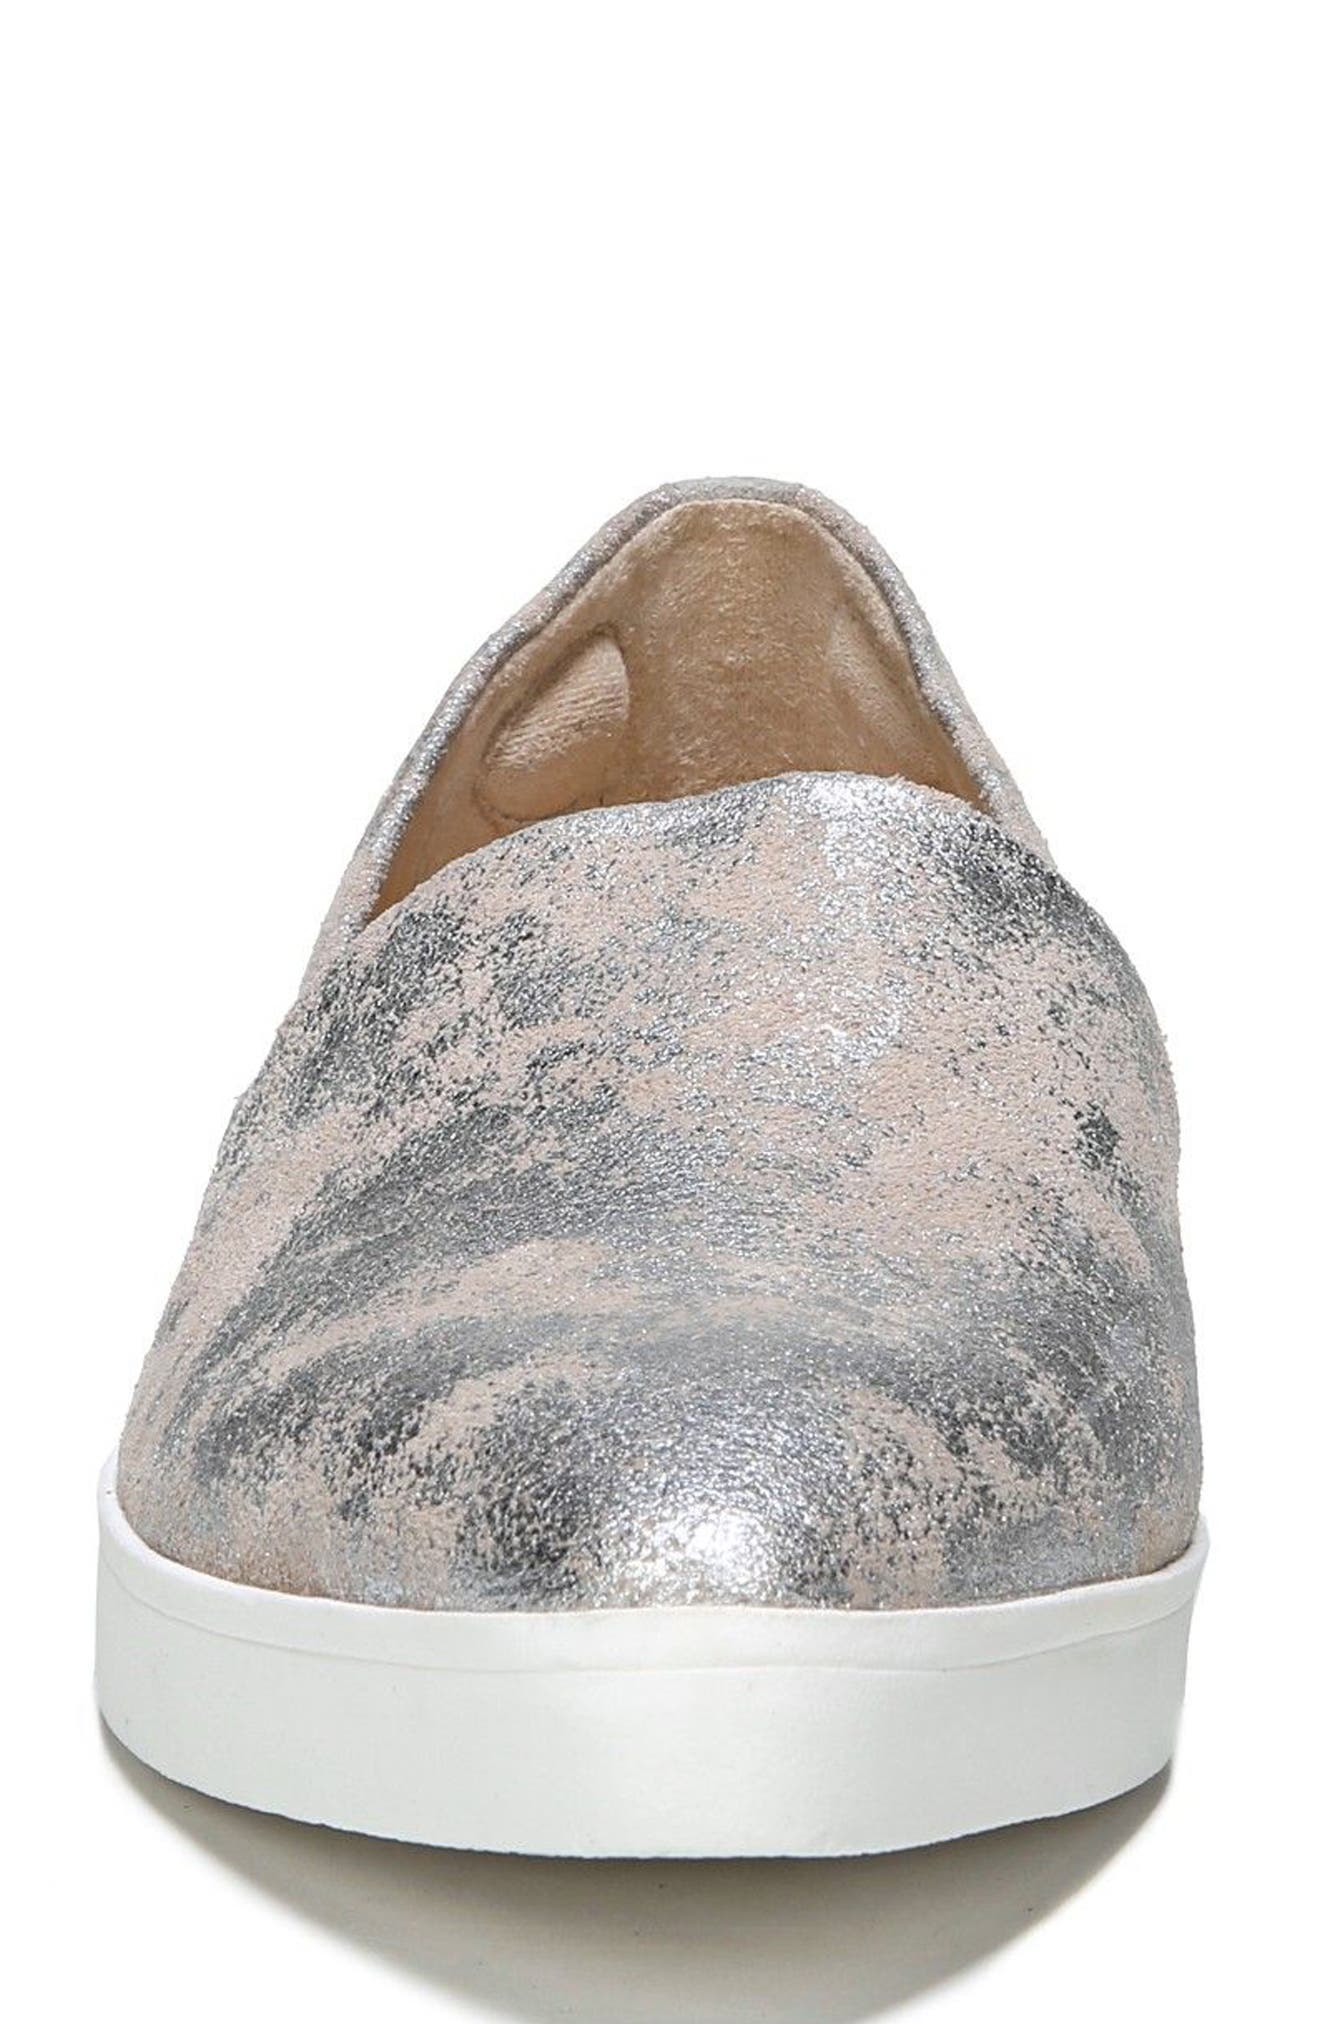 'Vienna' Slip-on Sneaker,                             Alternate thumbnail 4, color,                             Silver Leather